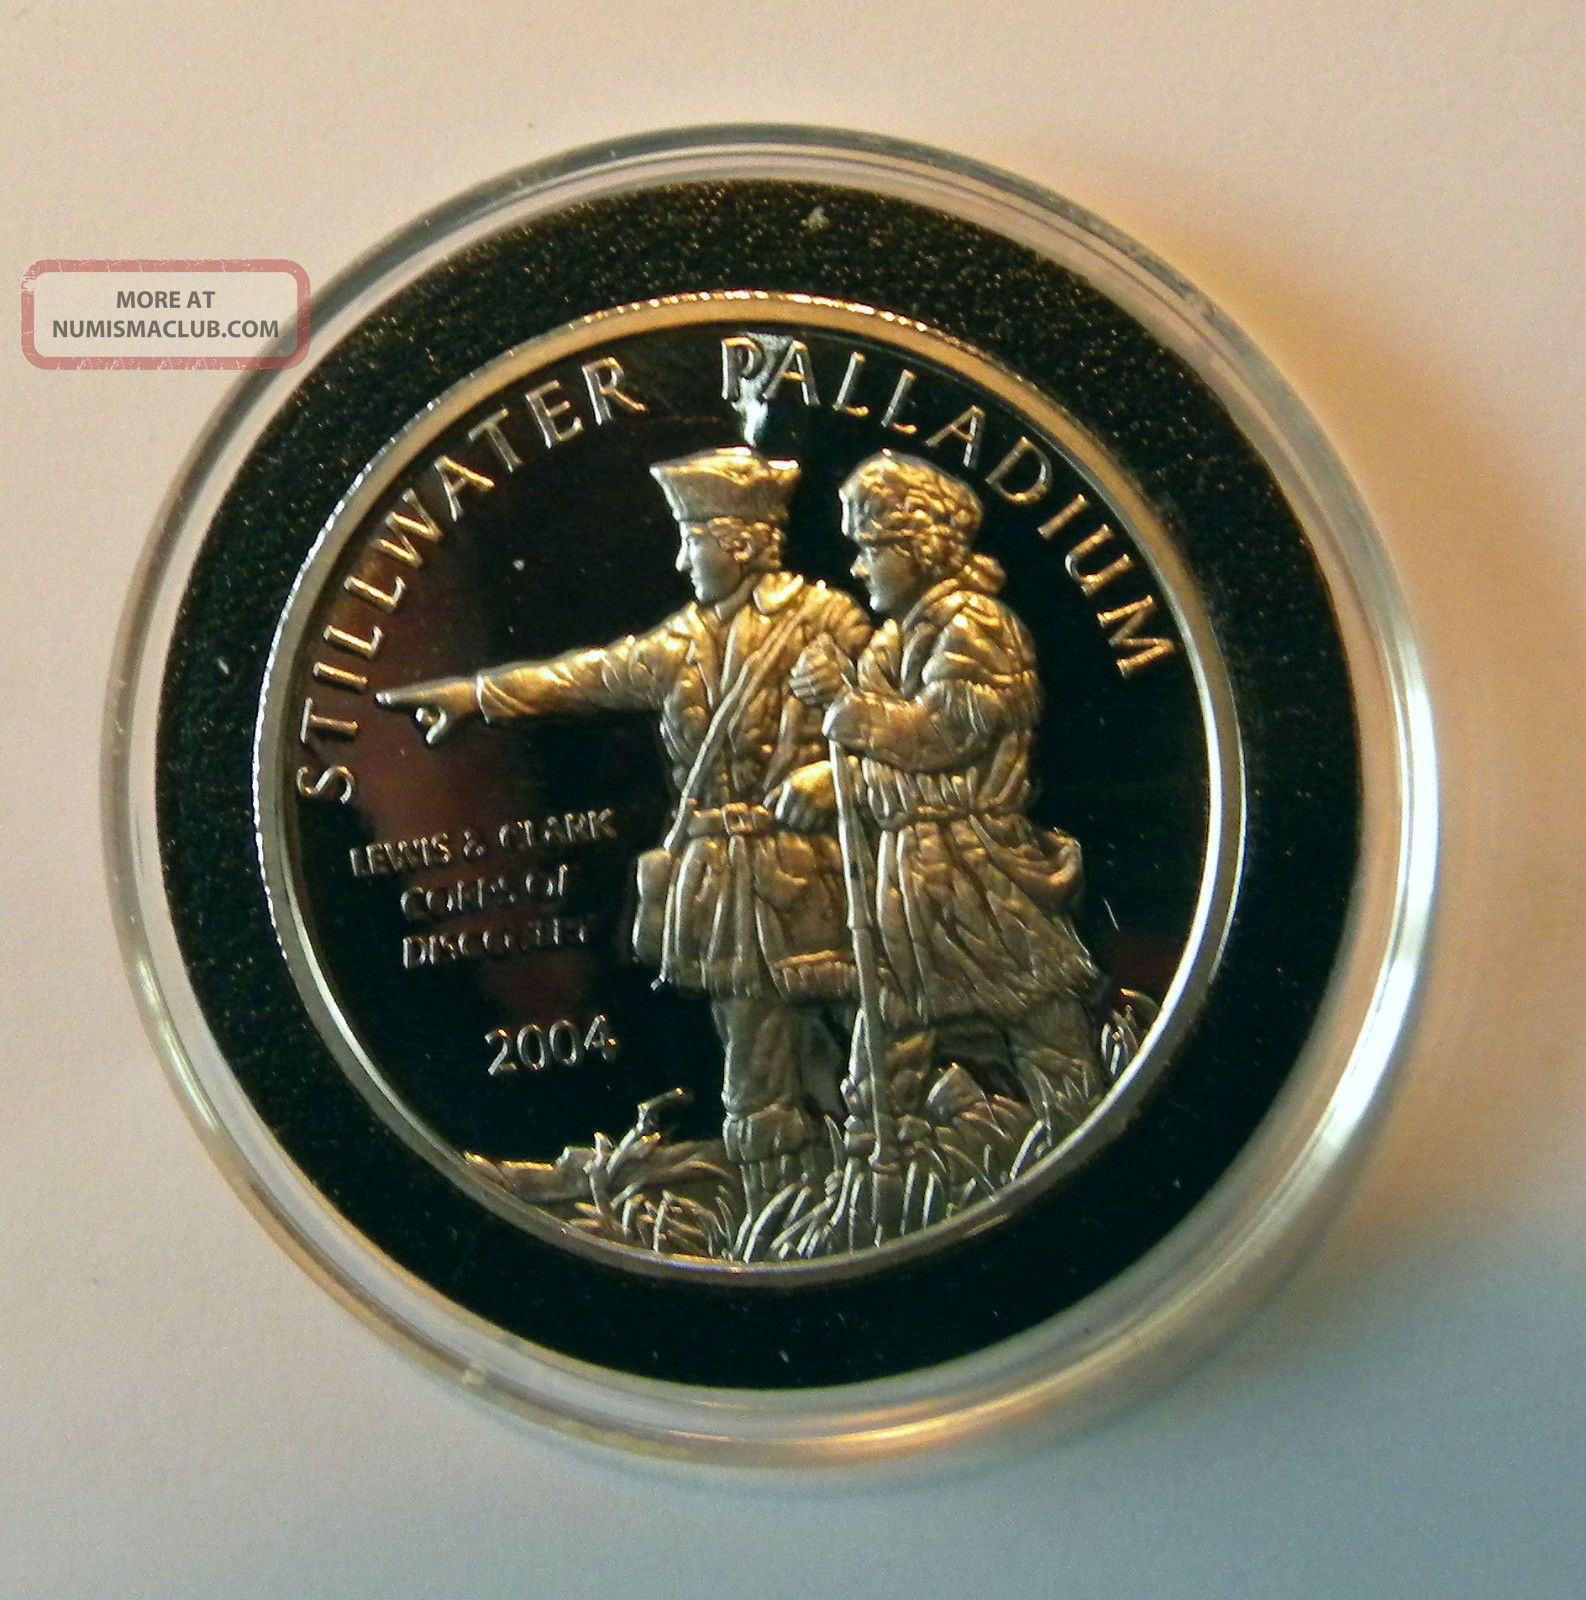 2004 Stillwater Lewis & Clark 1 Oz.  9995 Palladium Coin Bullion photo